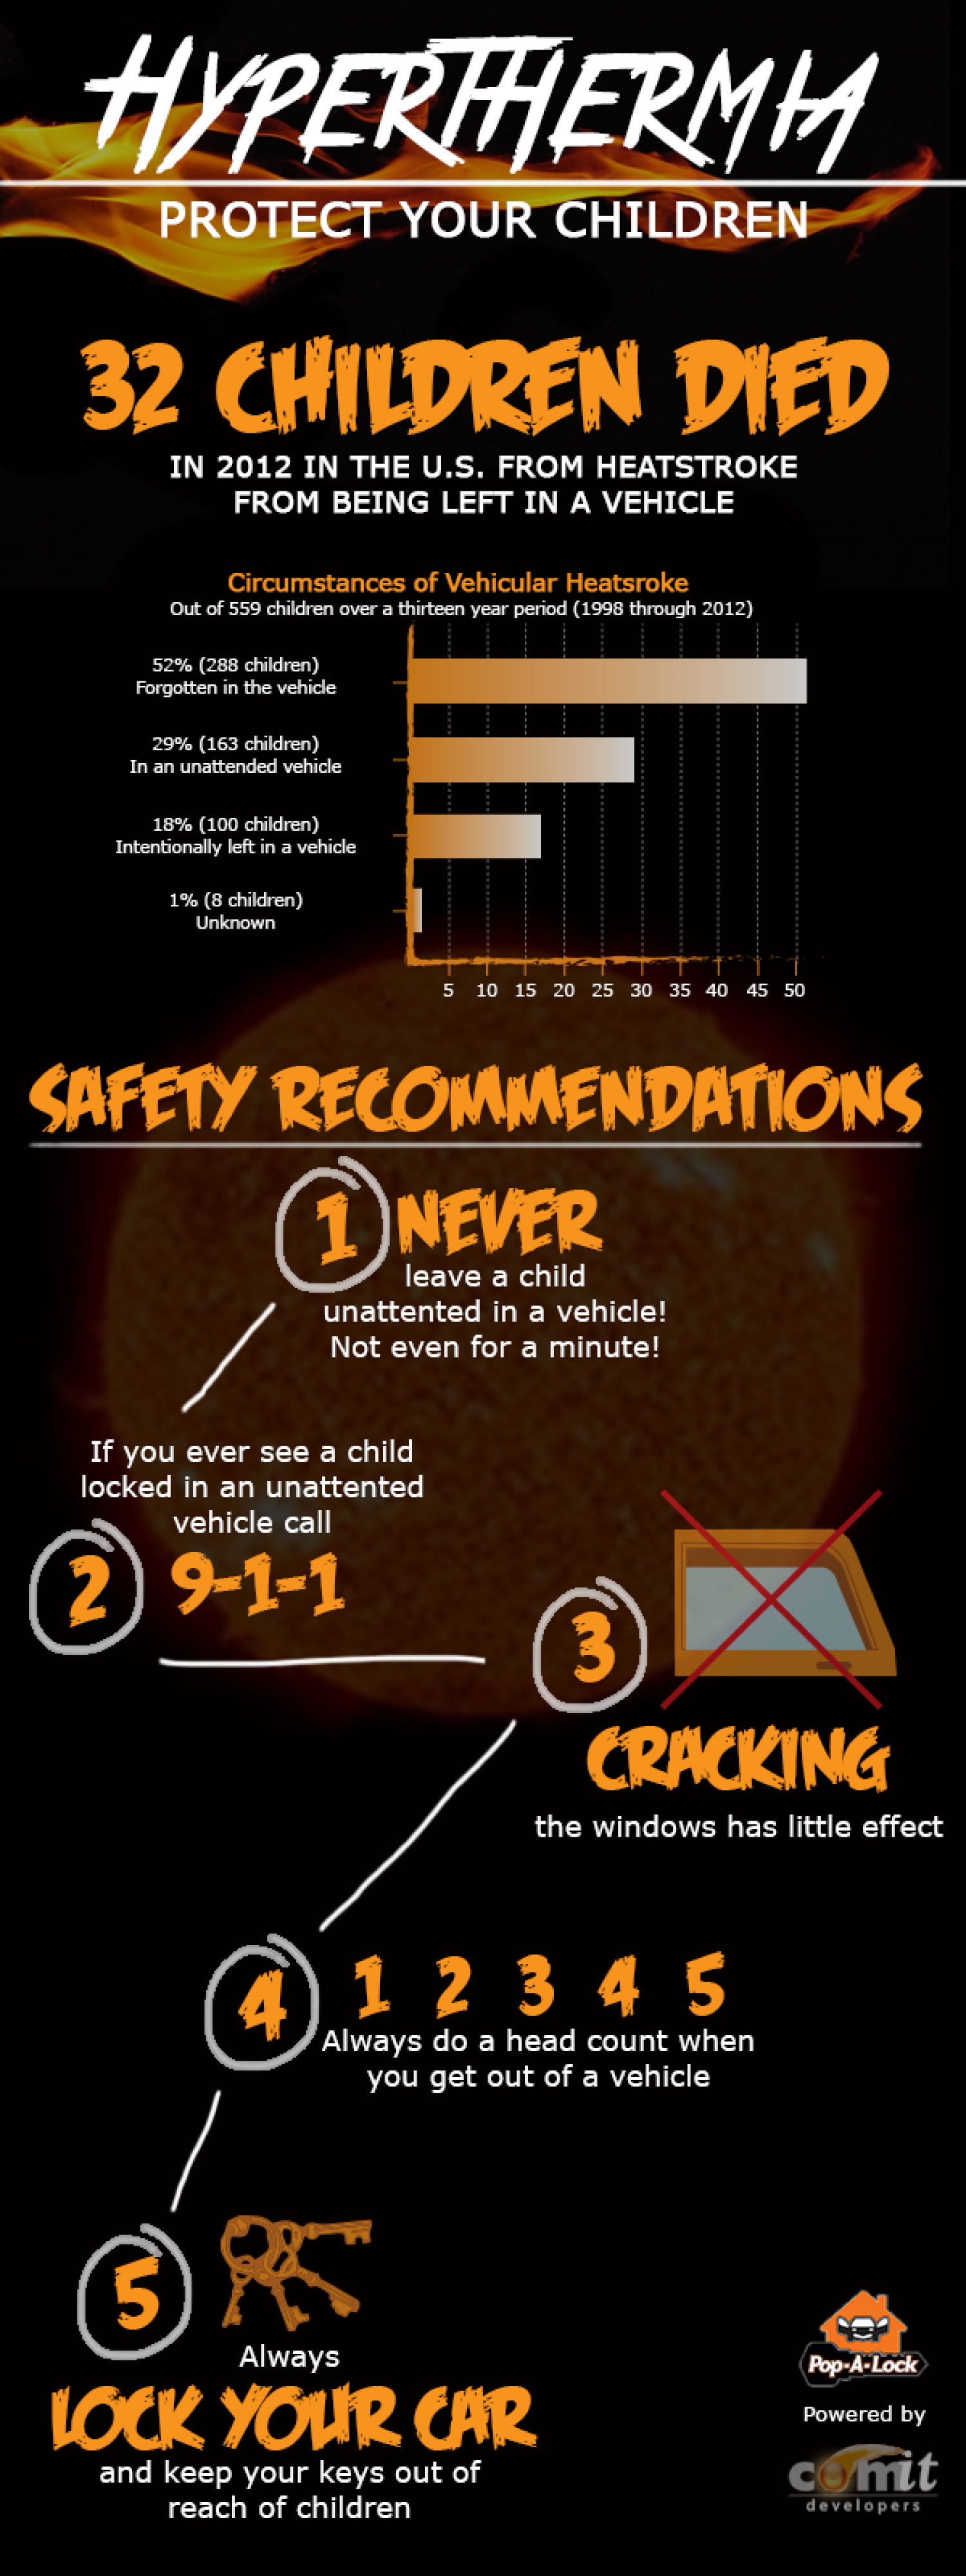 Hyperthermia: Protect Your Children Infographic